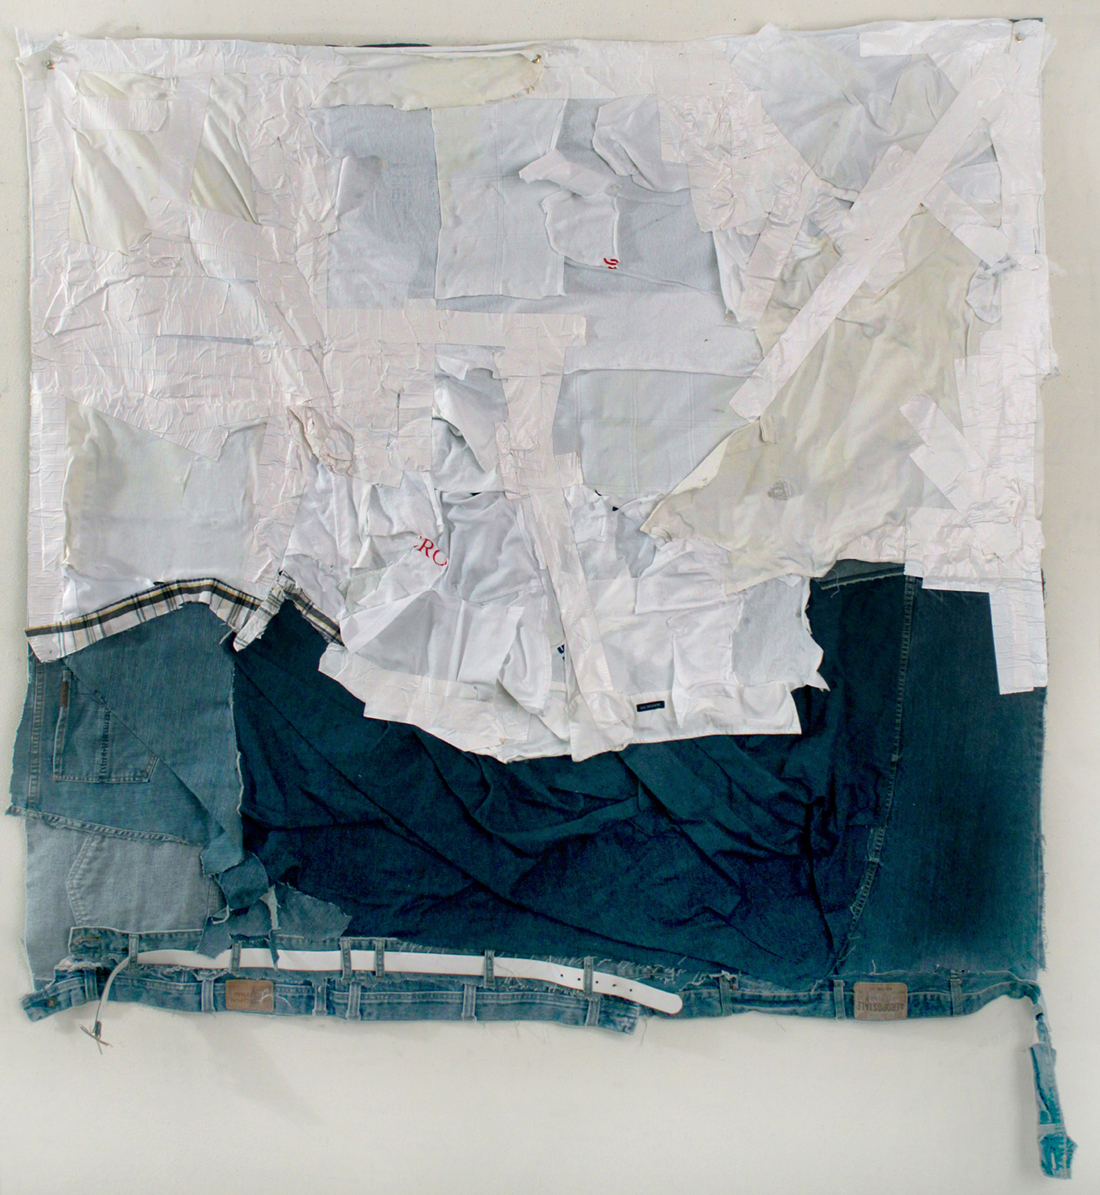 Nathaniel Donnet, No White Tees, 2013, duct tape, clothing, plastic belt, 60 x 63 inches